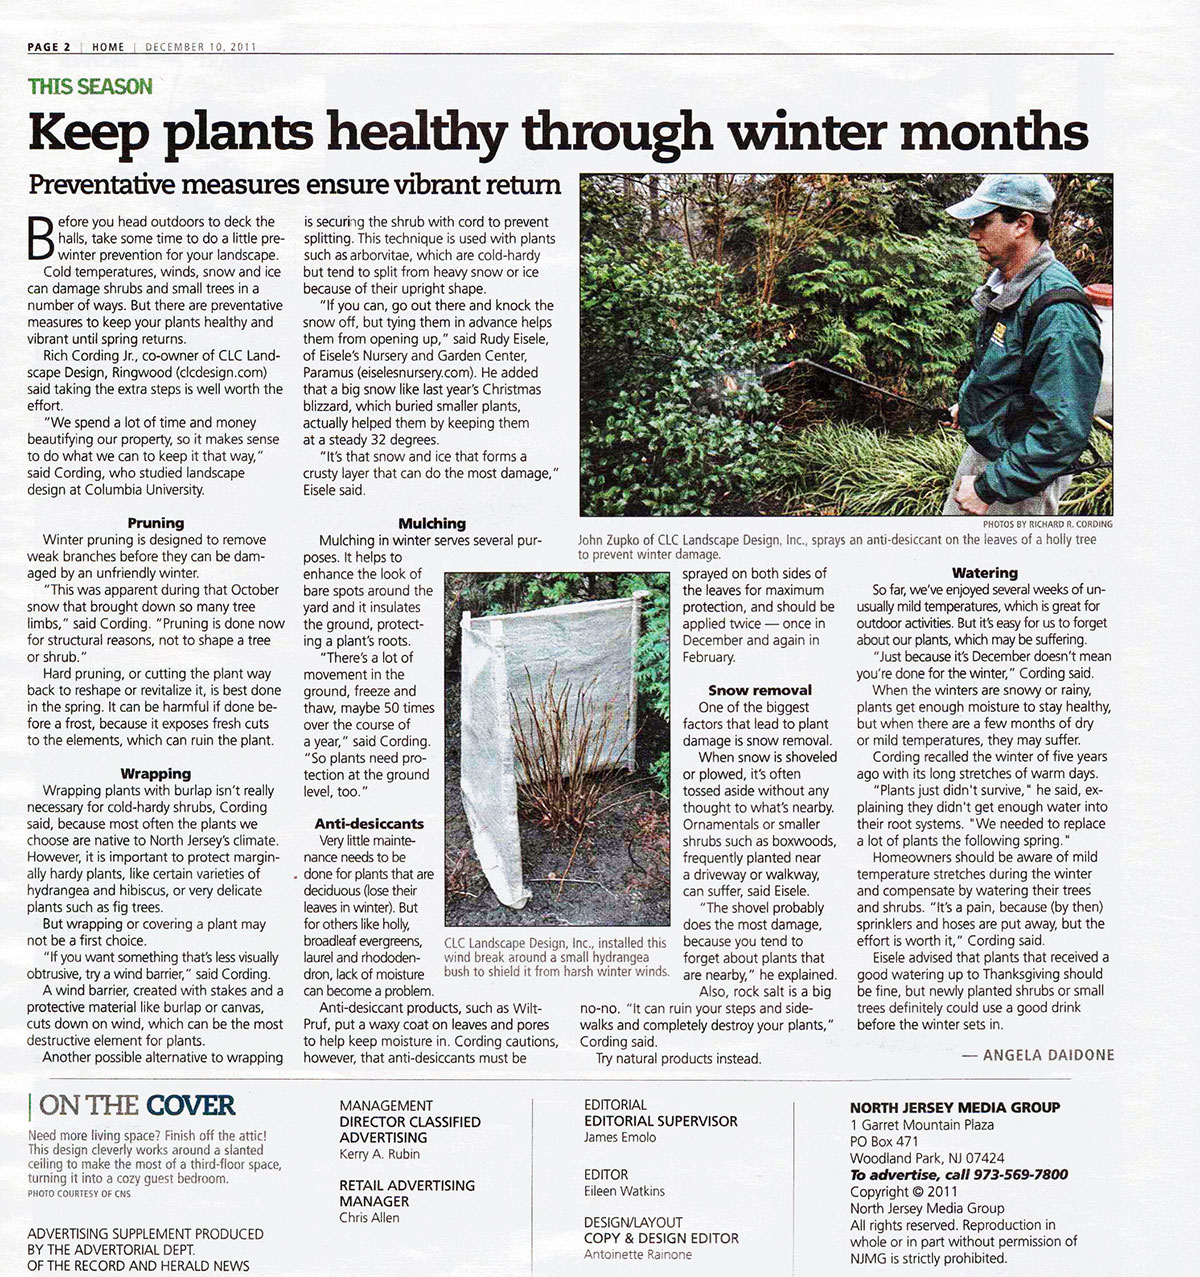 The Record - Keep Plants Healthy Through NJ Winter (page 1)